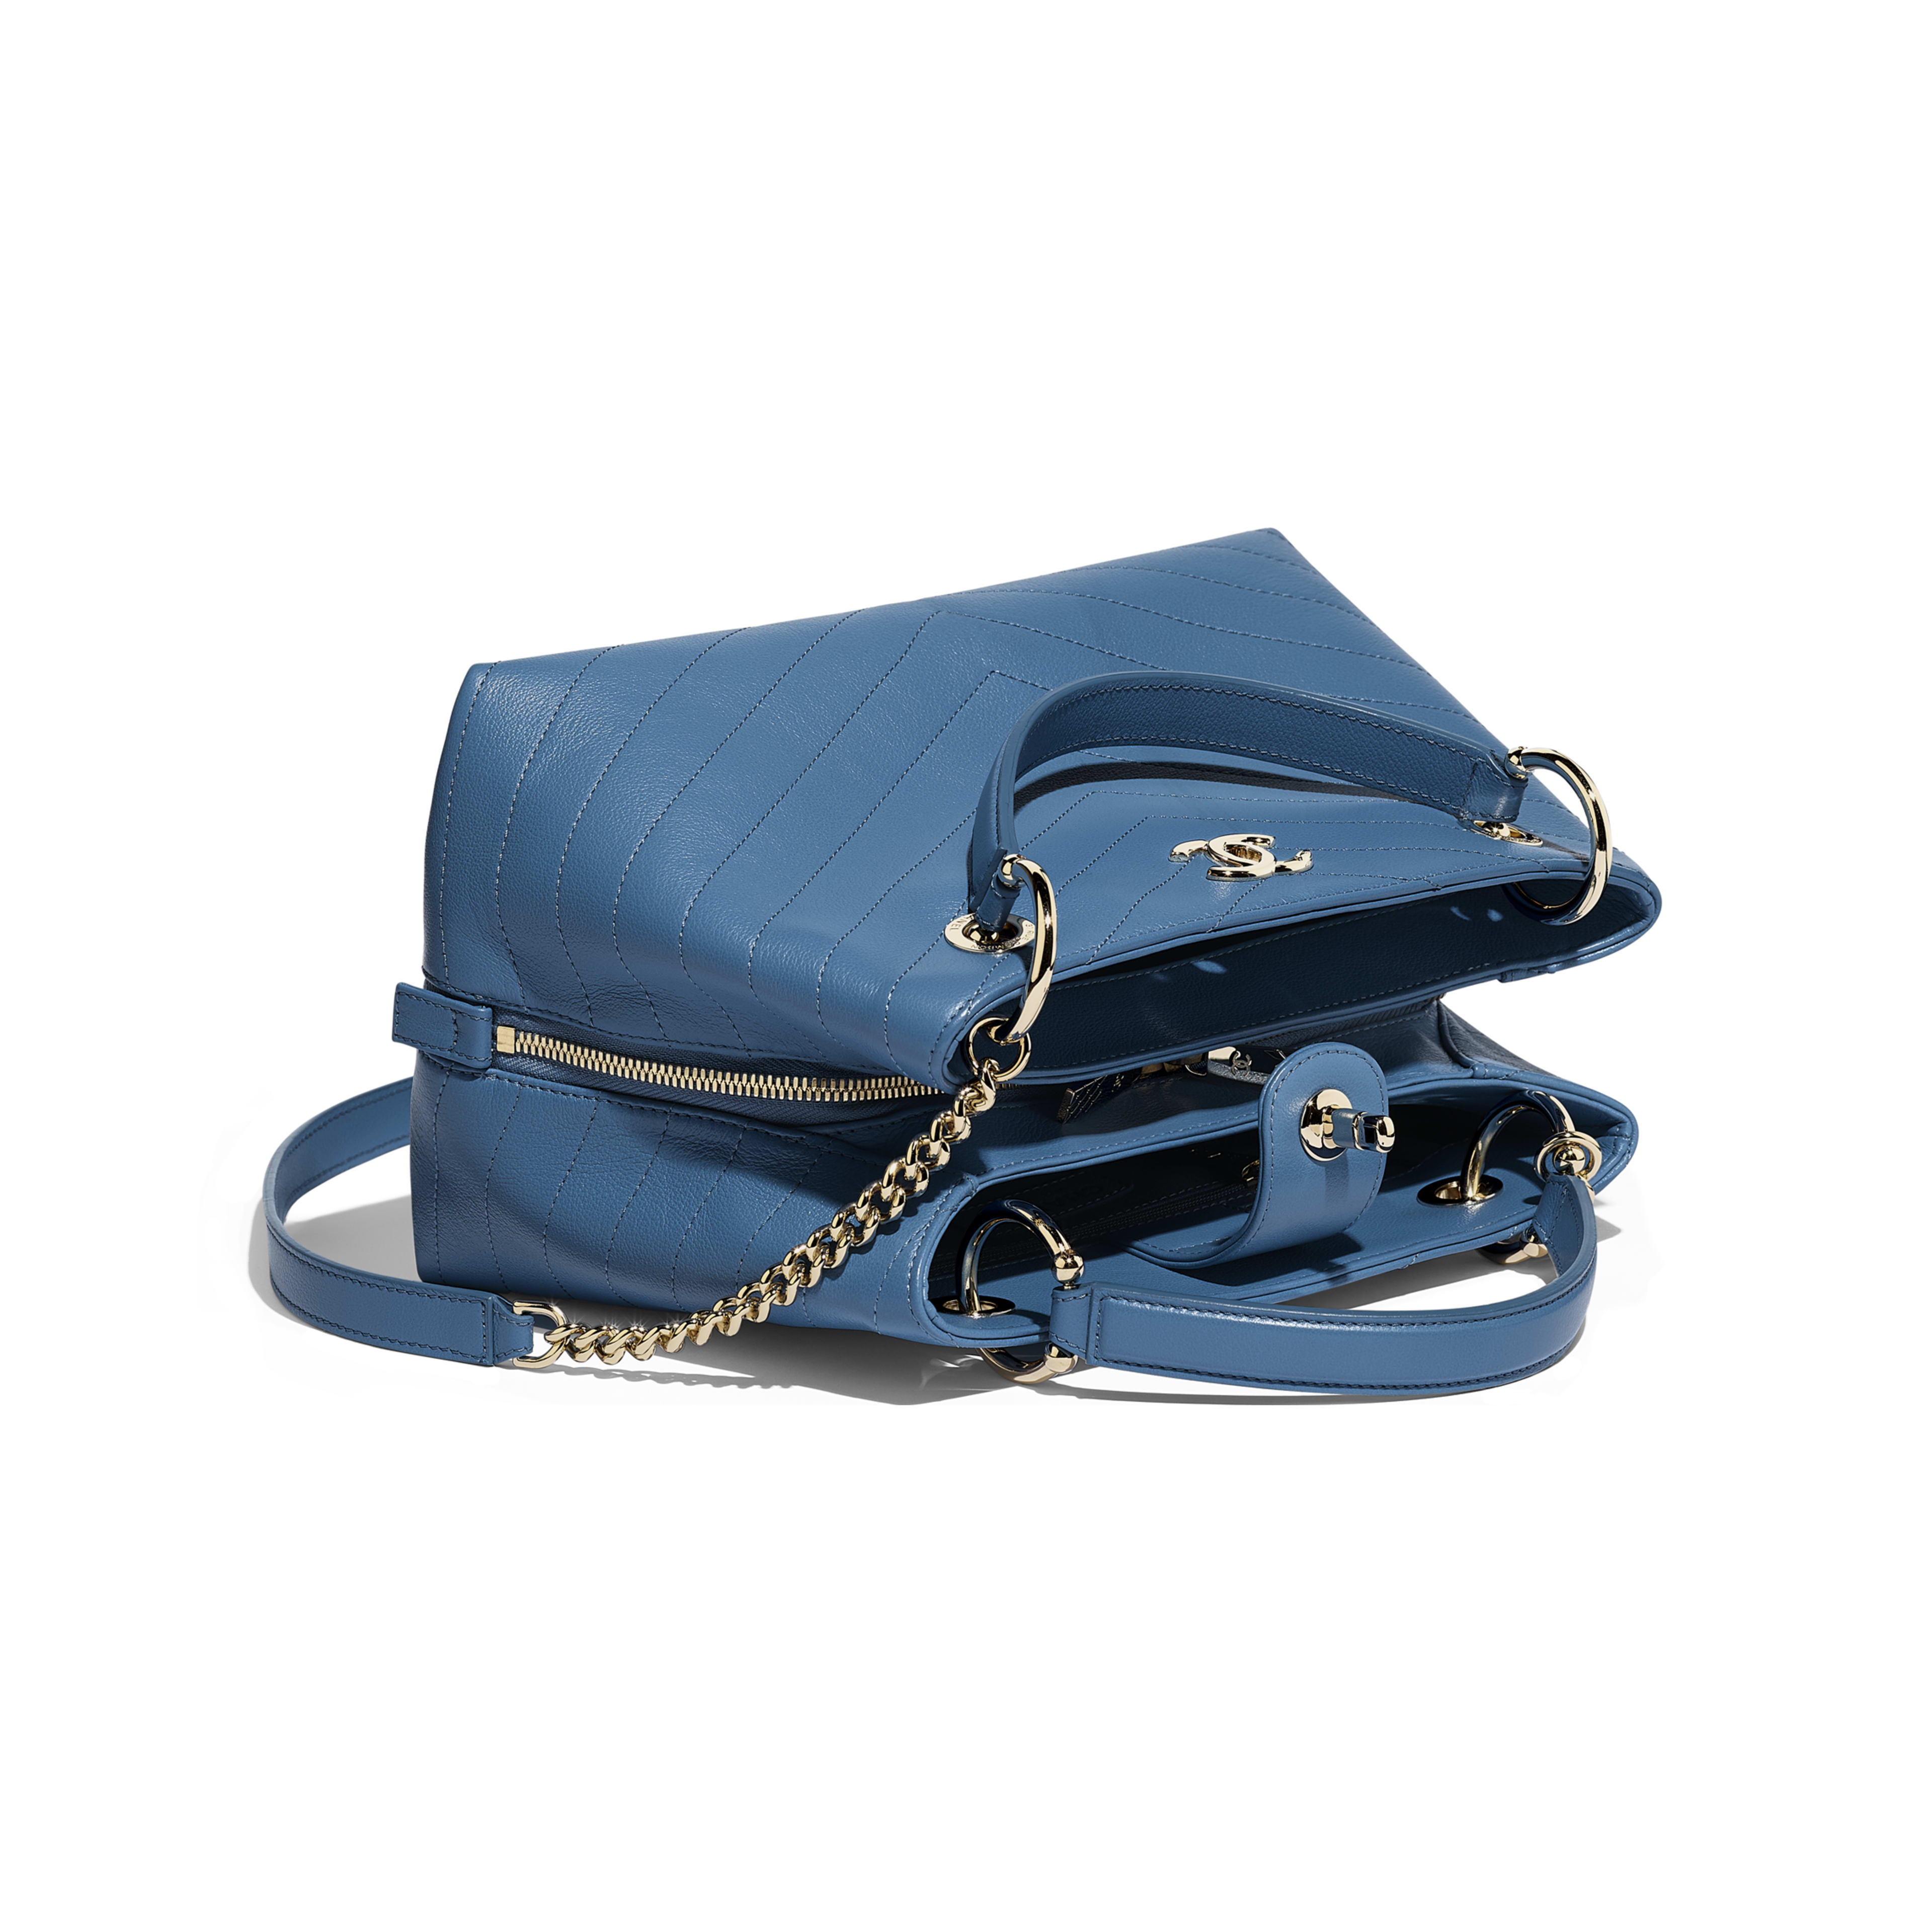 Small Zipped Shopping Bag - Blue - Grained Calfskin & Gold-Tone Metal - Other view - see full sized version